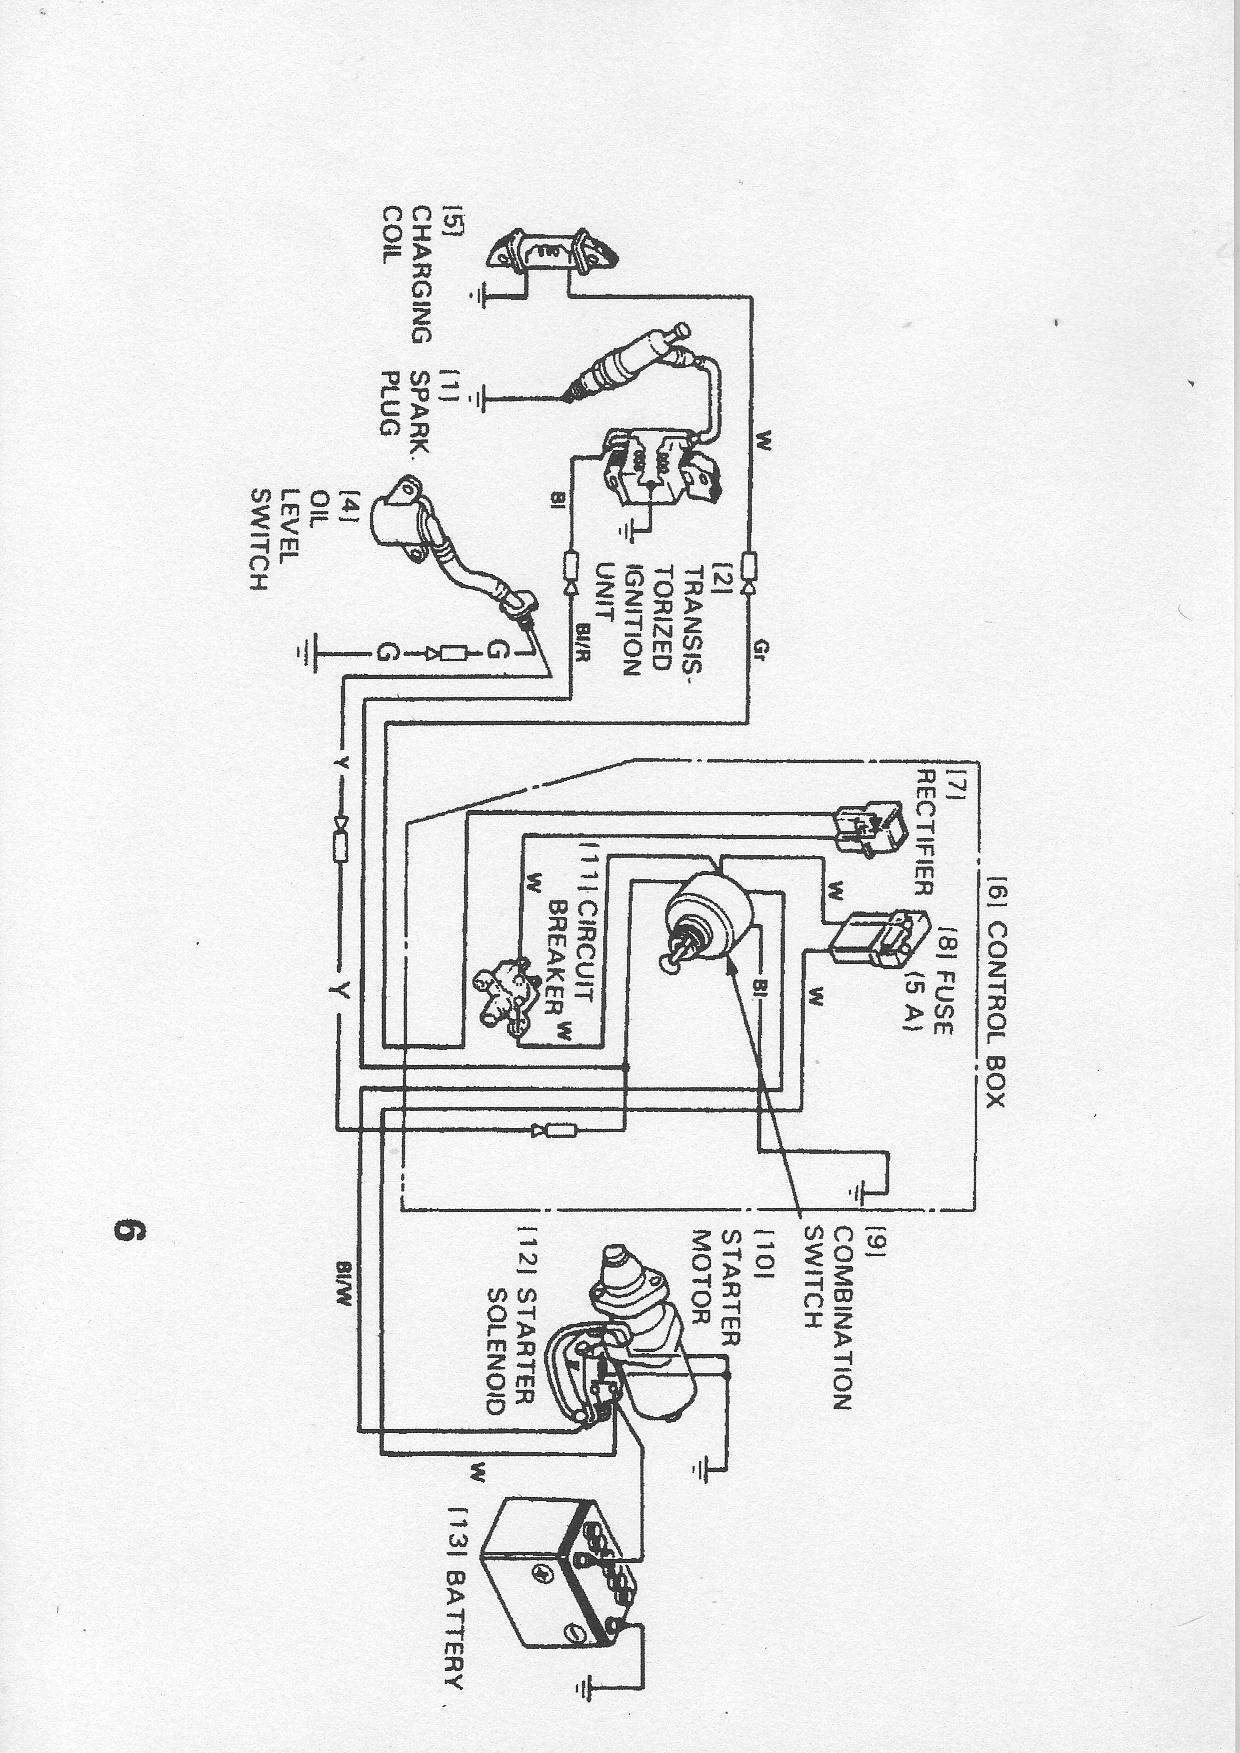 honda gx 340 engine diagram honda gx340 zb80 gasoline